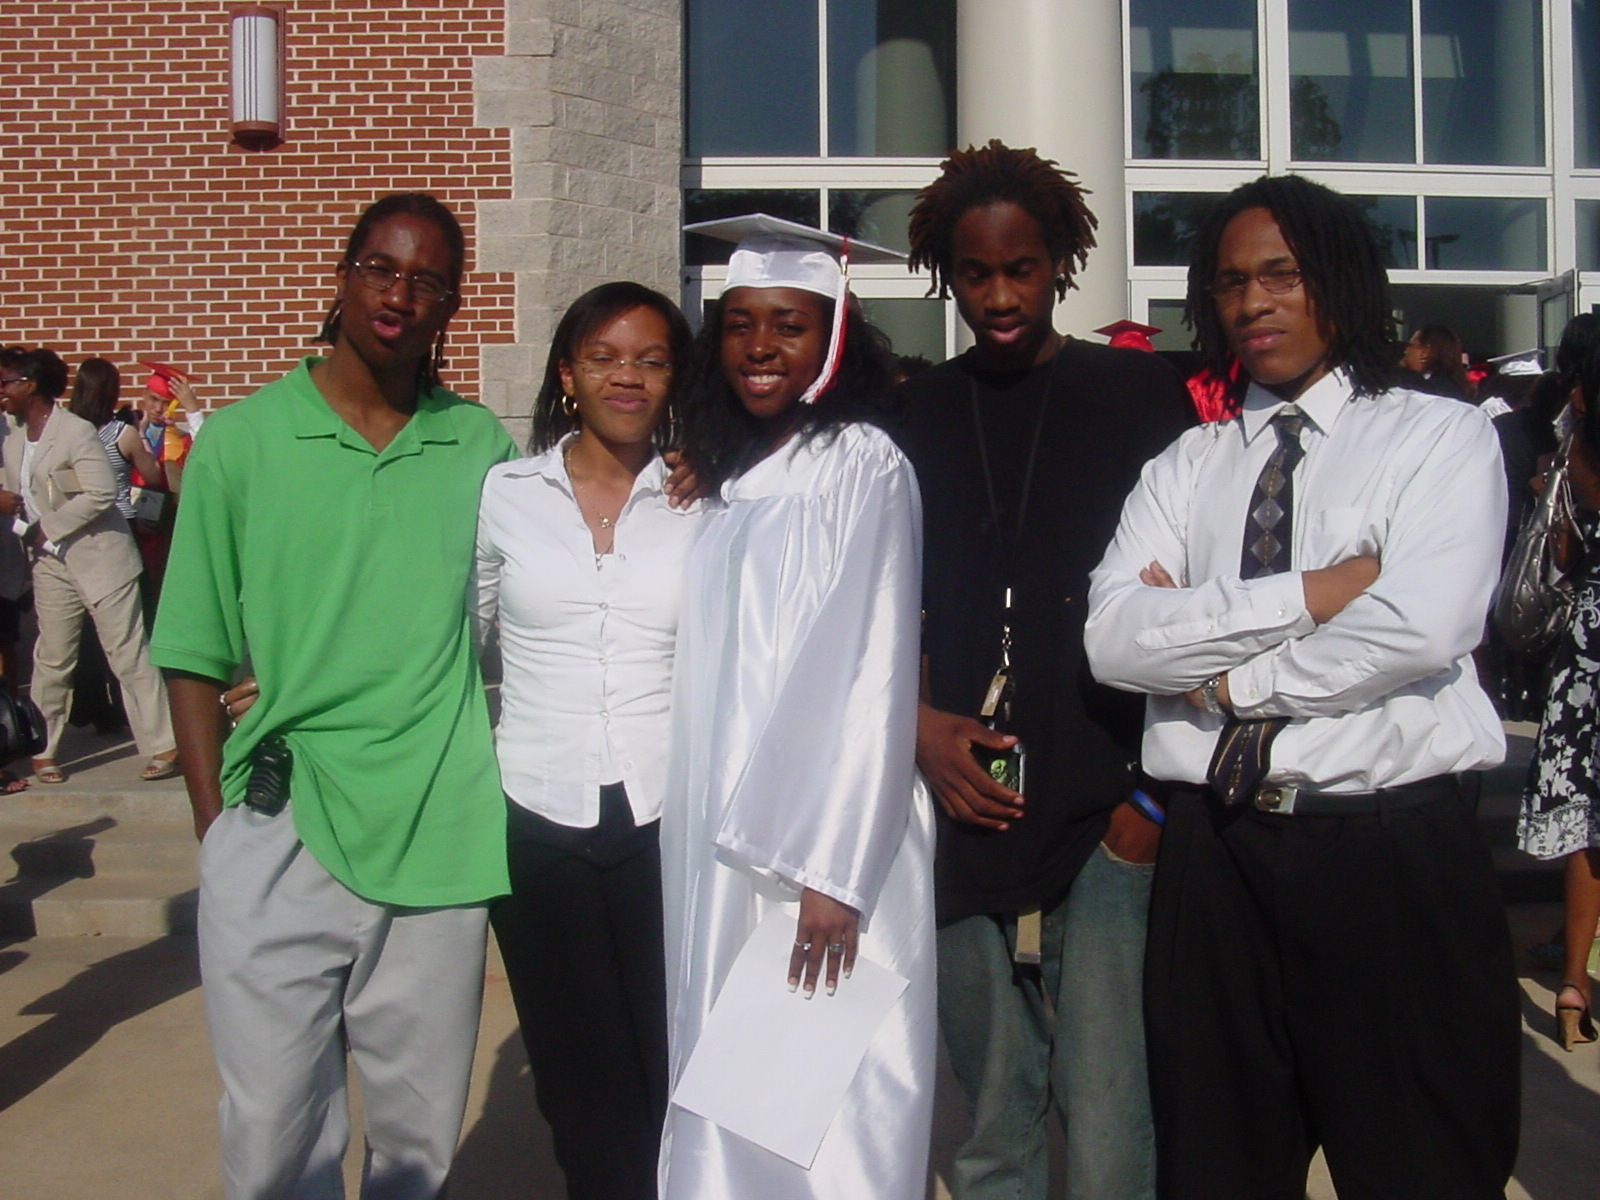 2008-Graduation of Students who became Mentors then Staff